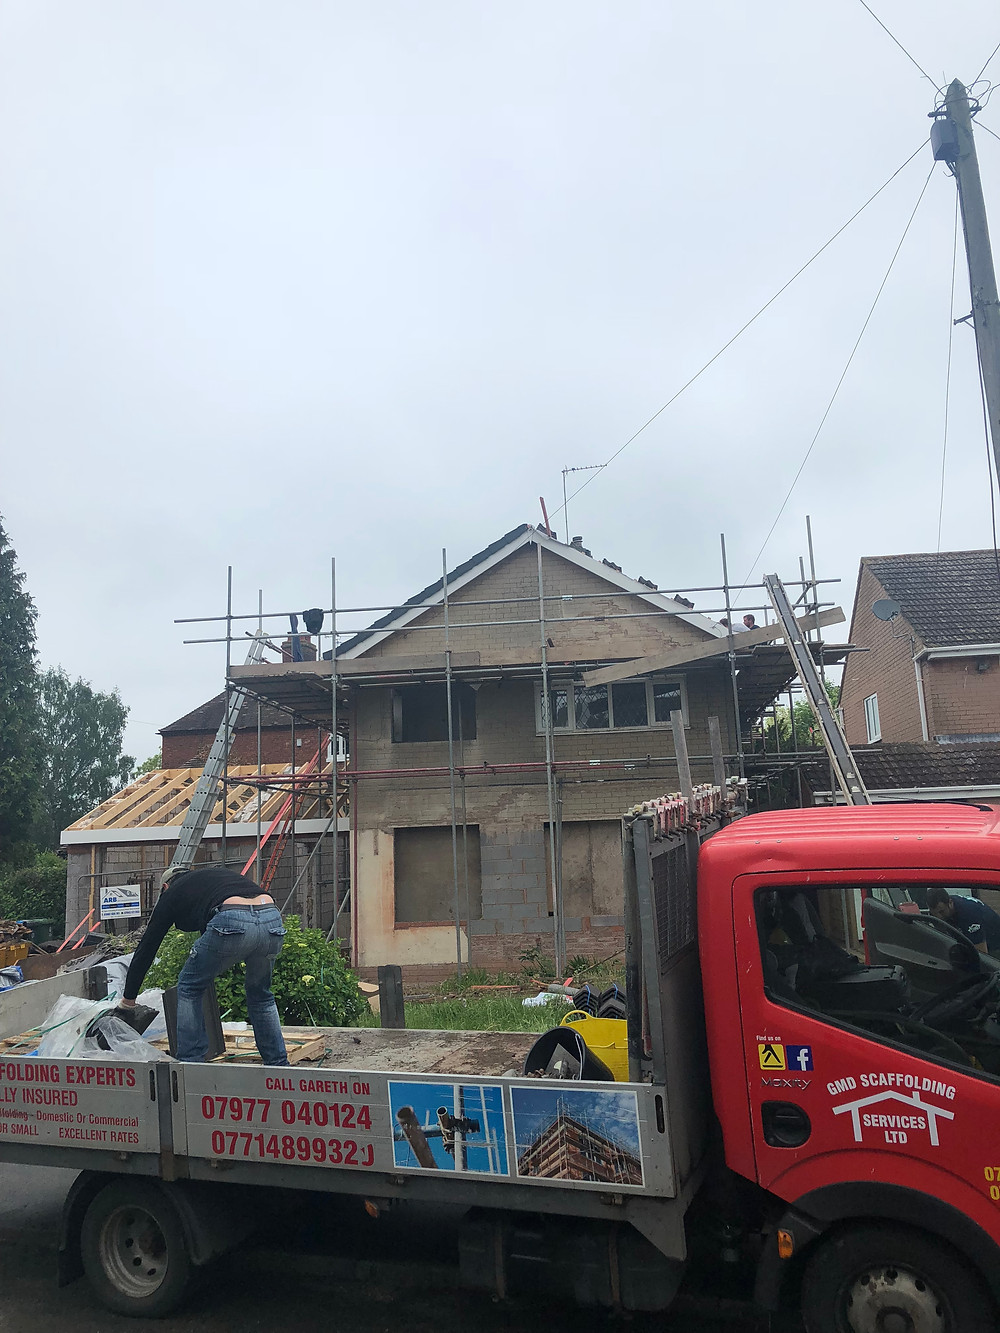 GMD Roofing & Scaffolding services. west midlands roofing experts